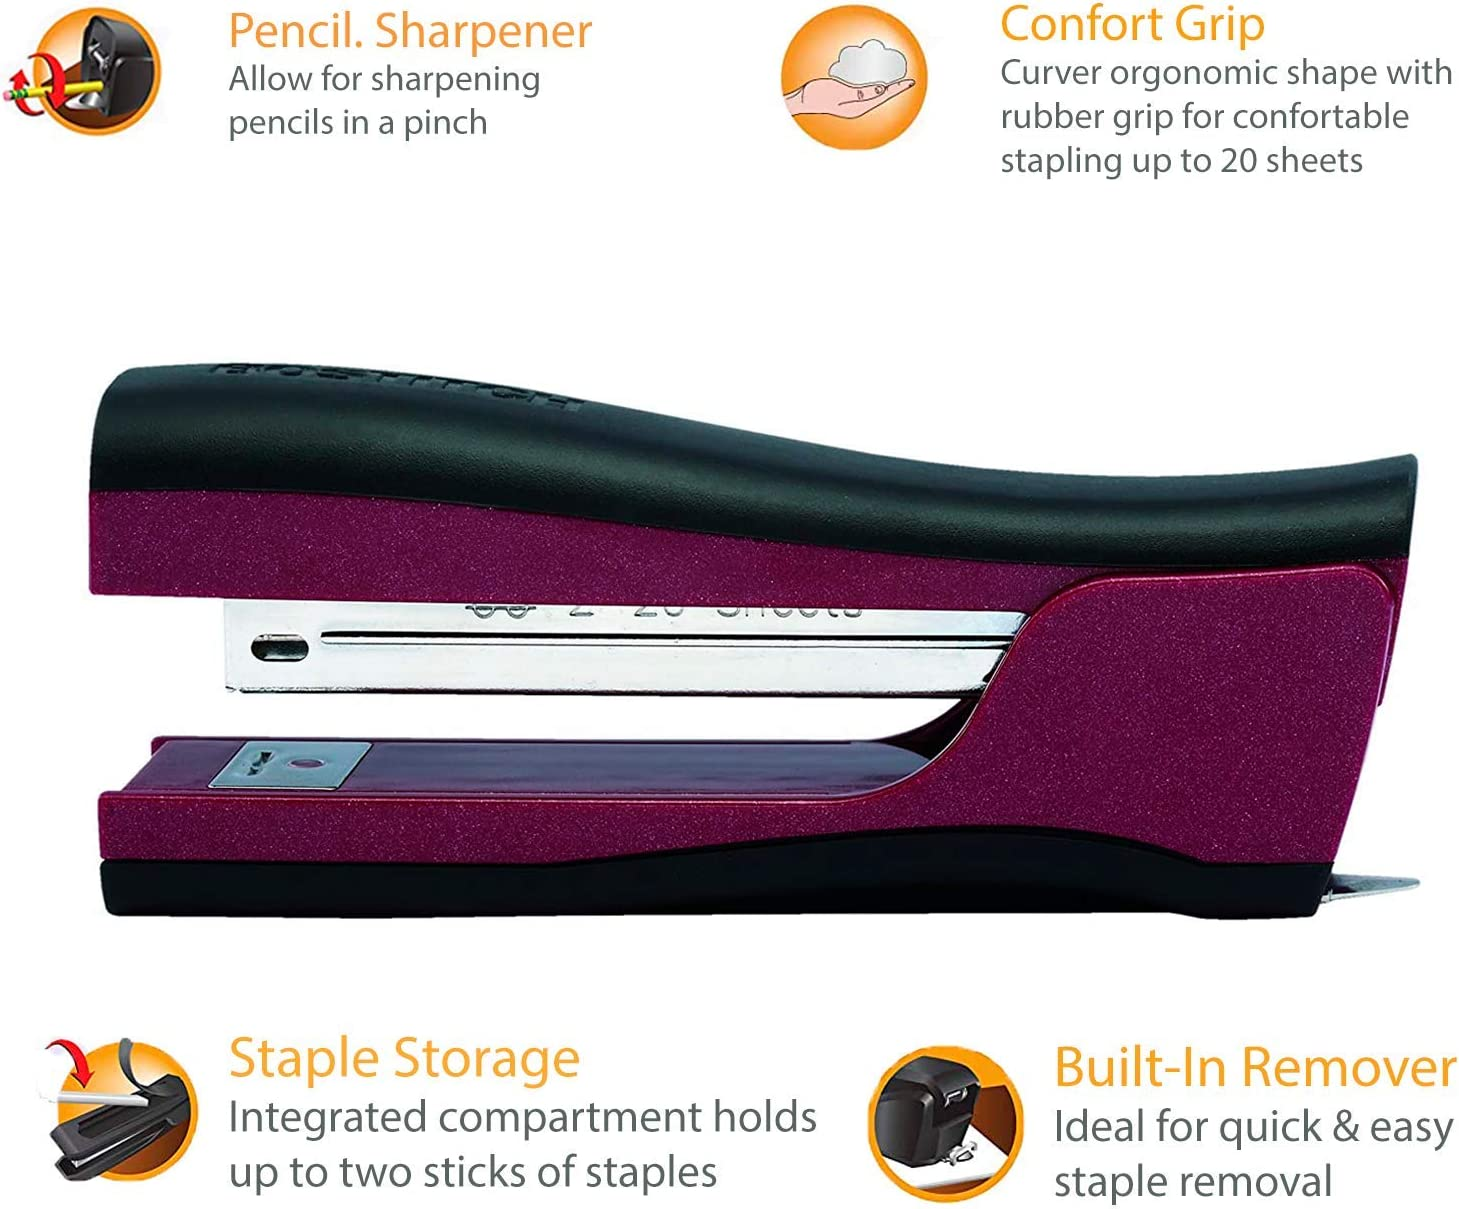 2105 1.6 x 3 x 11 Bostitch Office EZ Squeeze Reduced Effort 3-Hole Punch Purple 12 Sheets